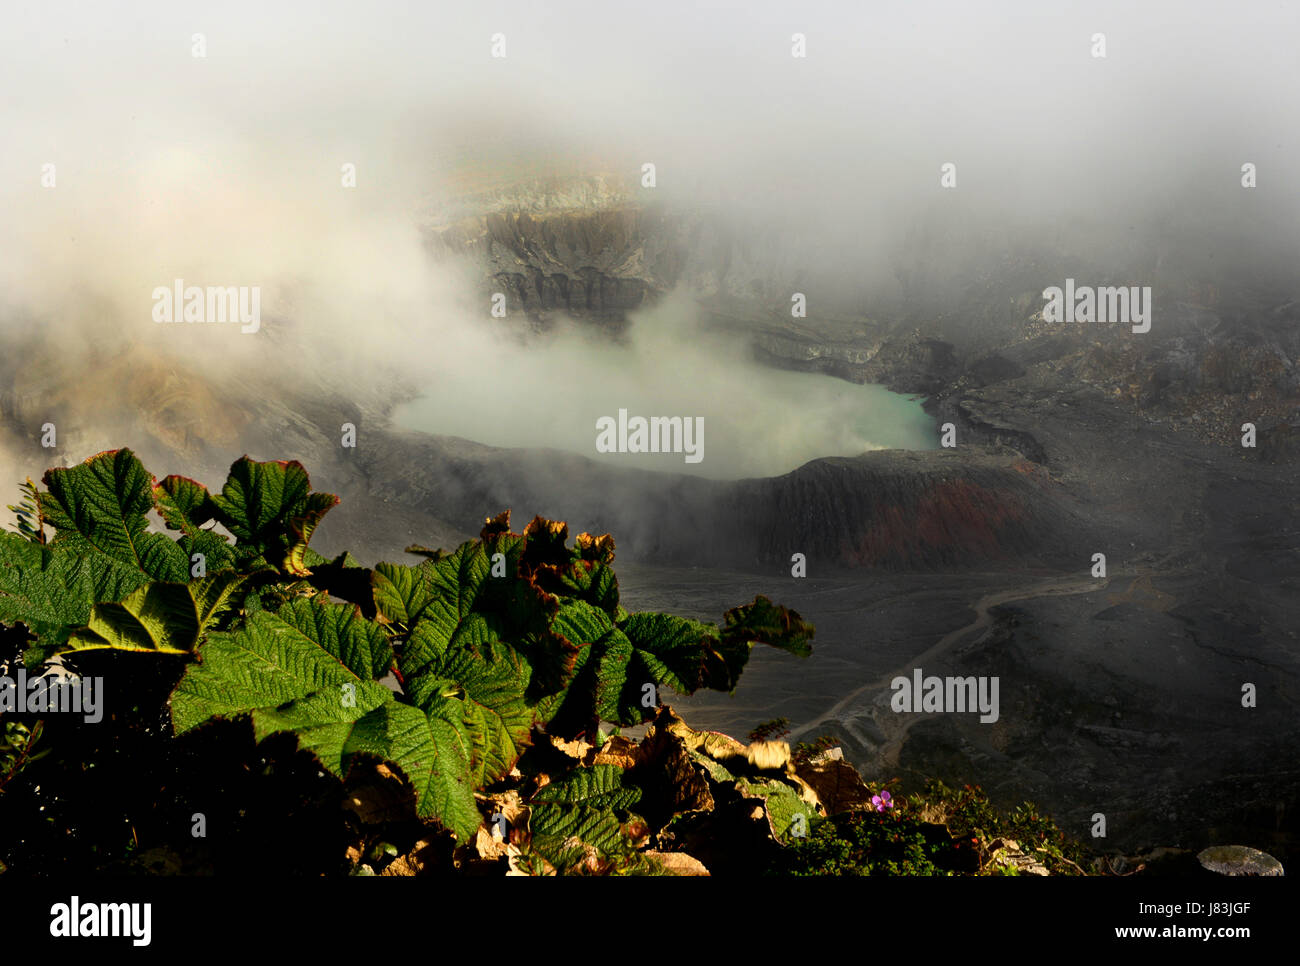 Steam rises from the crater at Poas Volcano in Costa Rica. - Stock Image